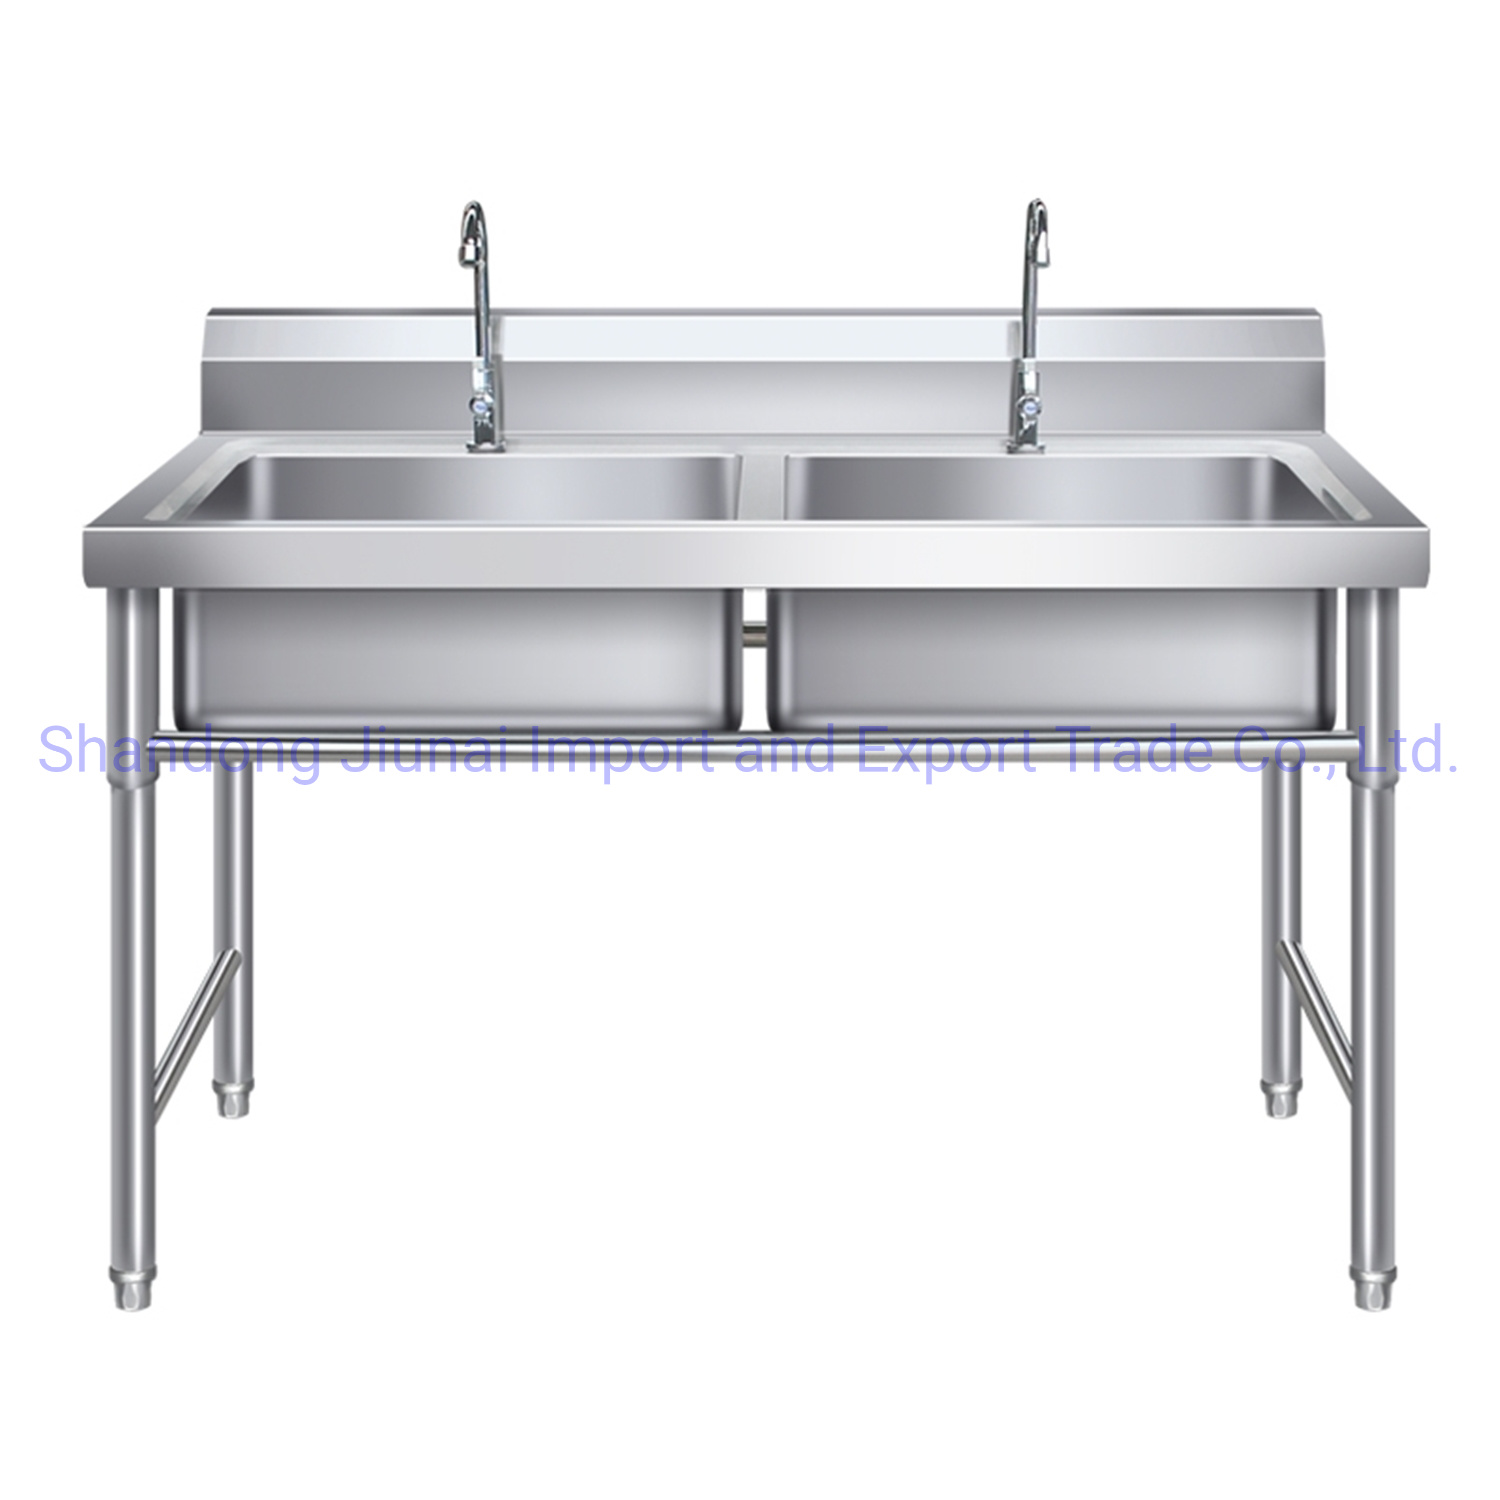 China Commercial Kitchen Stainless Steel Sink With Drainboard Photos Pictures Made In China Com